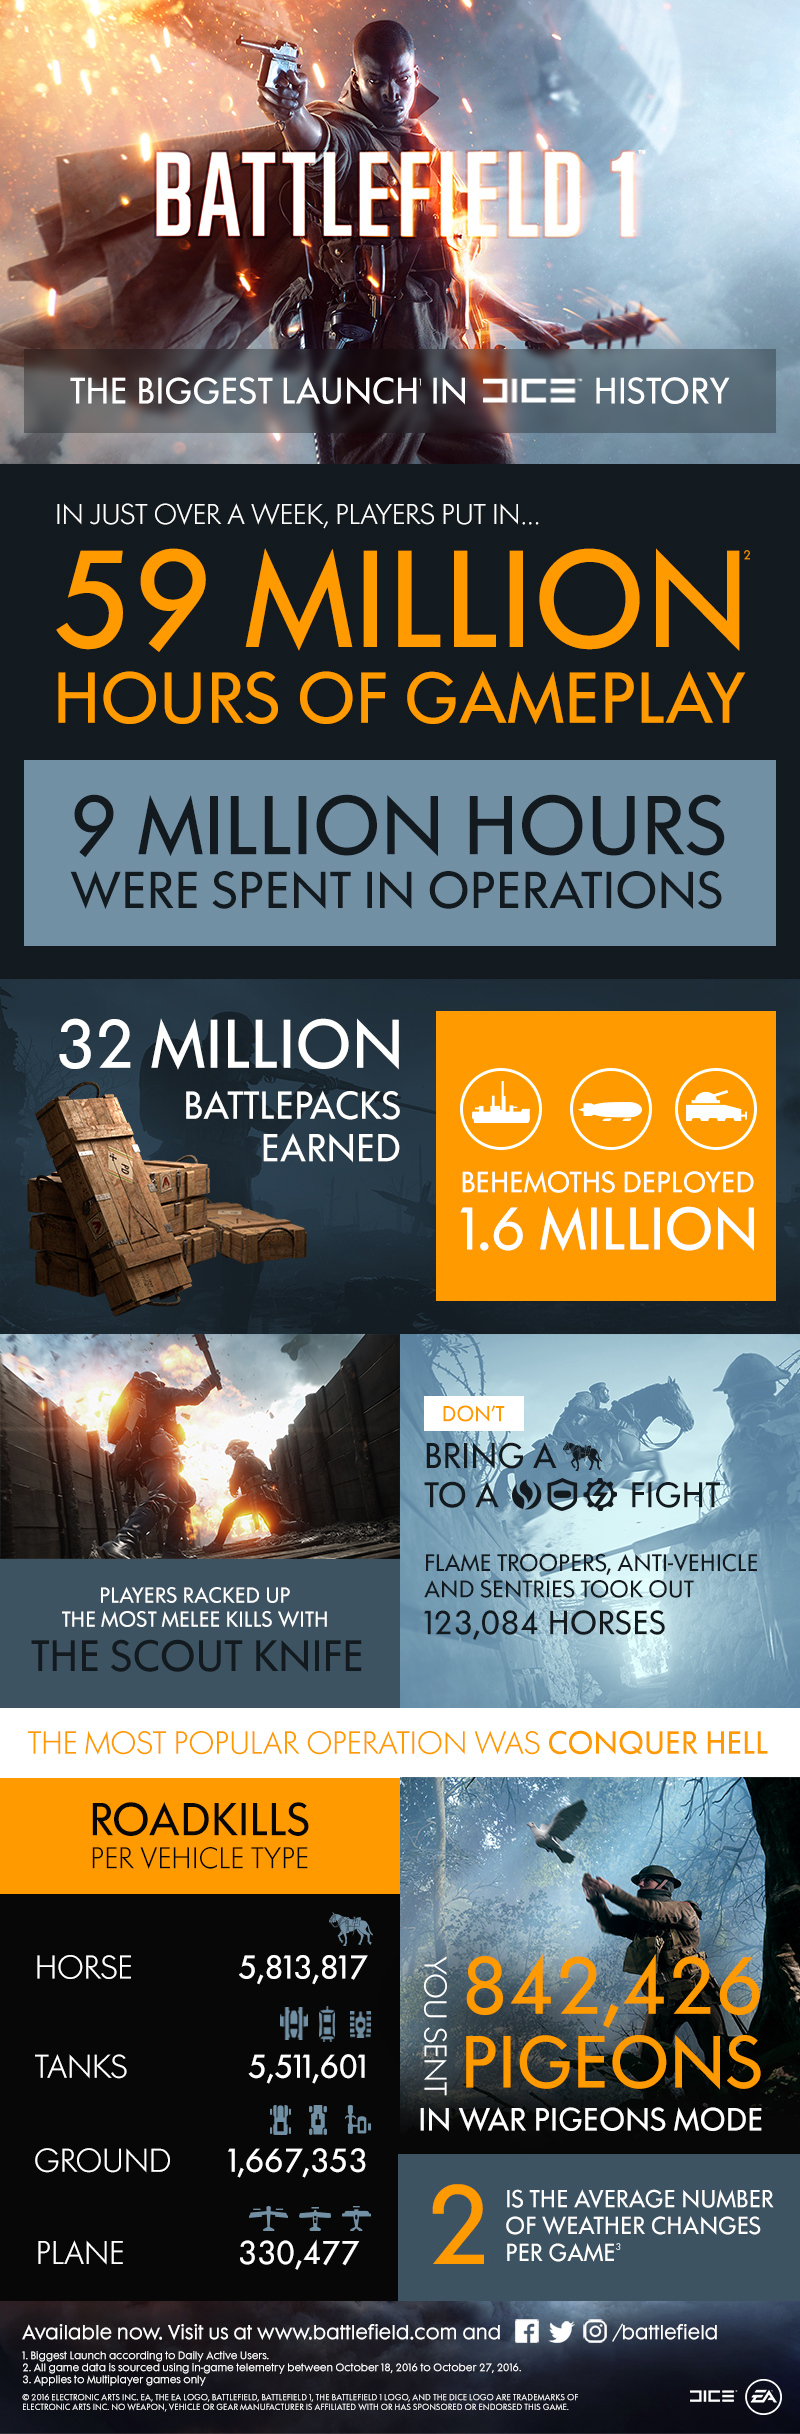 https://content.pulse.ea.com/content/legacy/battlefield-portal/en_US/news/battlefield-1/battlefield-1-launch-infographic/_jcr_content/body/image_0/renditions/rendition1.img.jpg